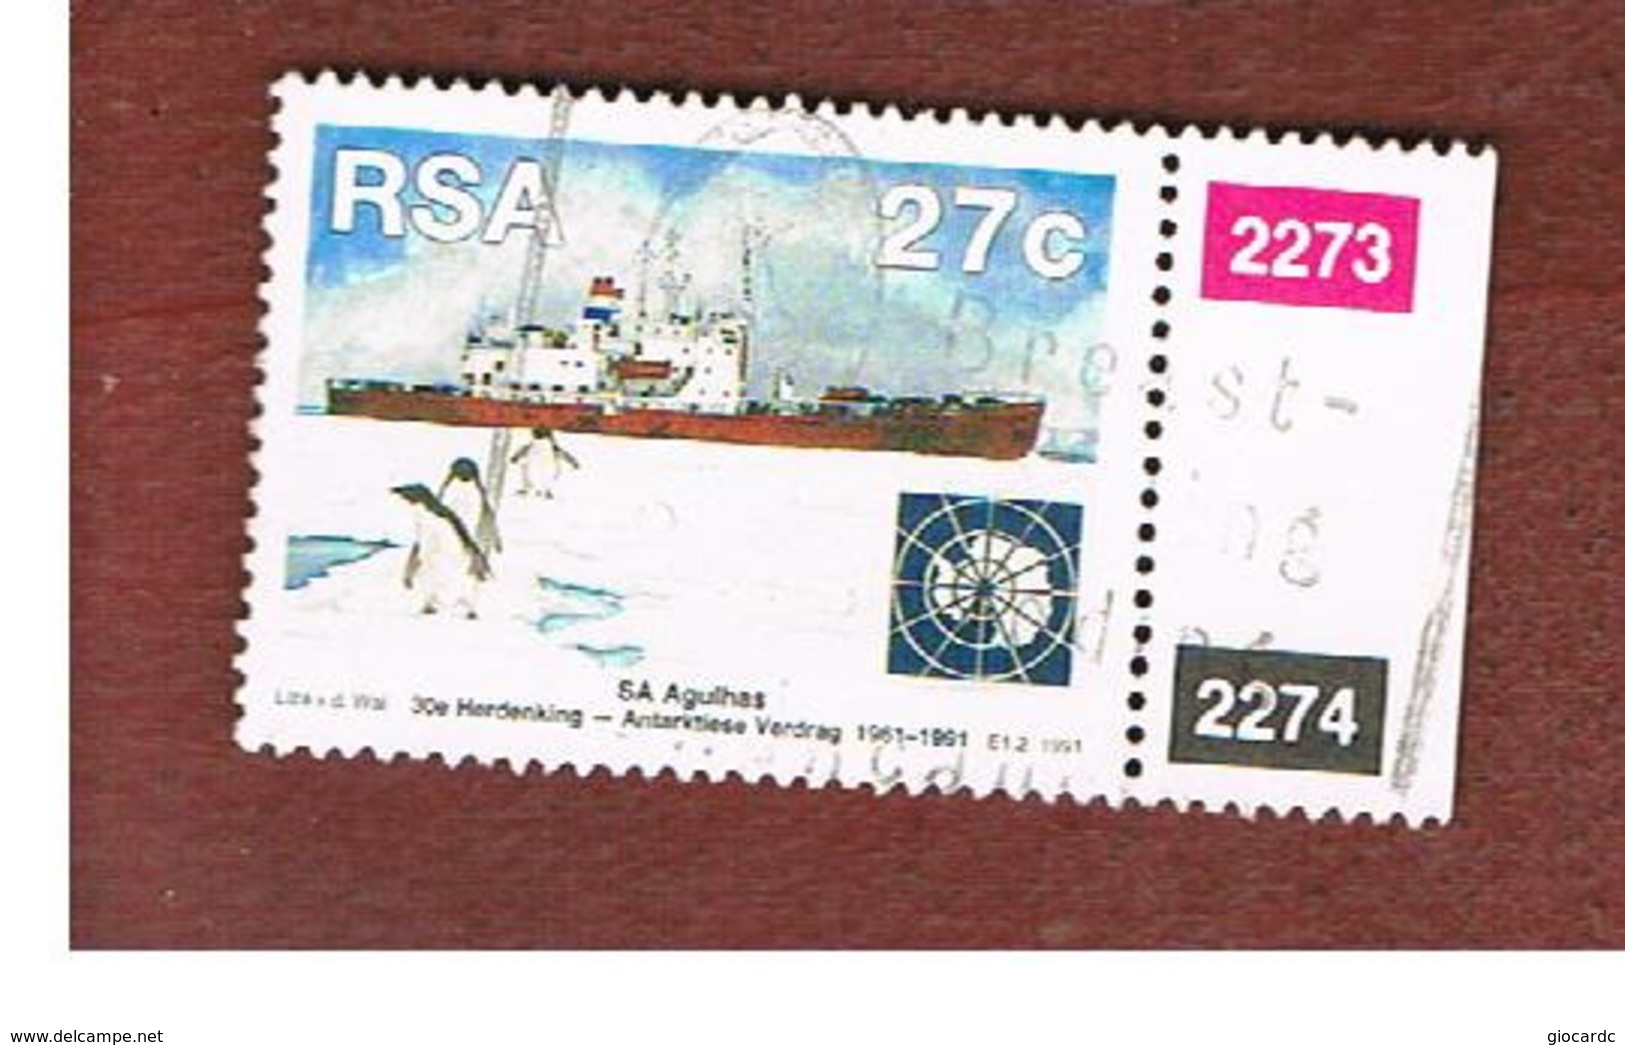 SUD AFRICA (SOUTH AFRICA) - SG 740  - 1991 ANTARCTIC TREATY: SHIP AGULHAS (WITH LABEL)  - USED - Usati